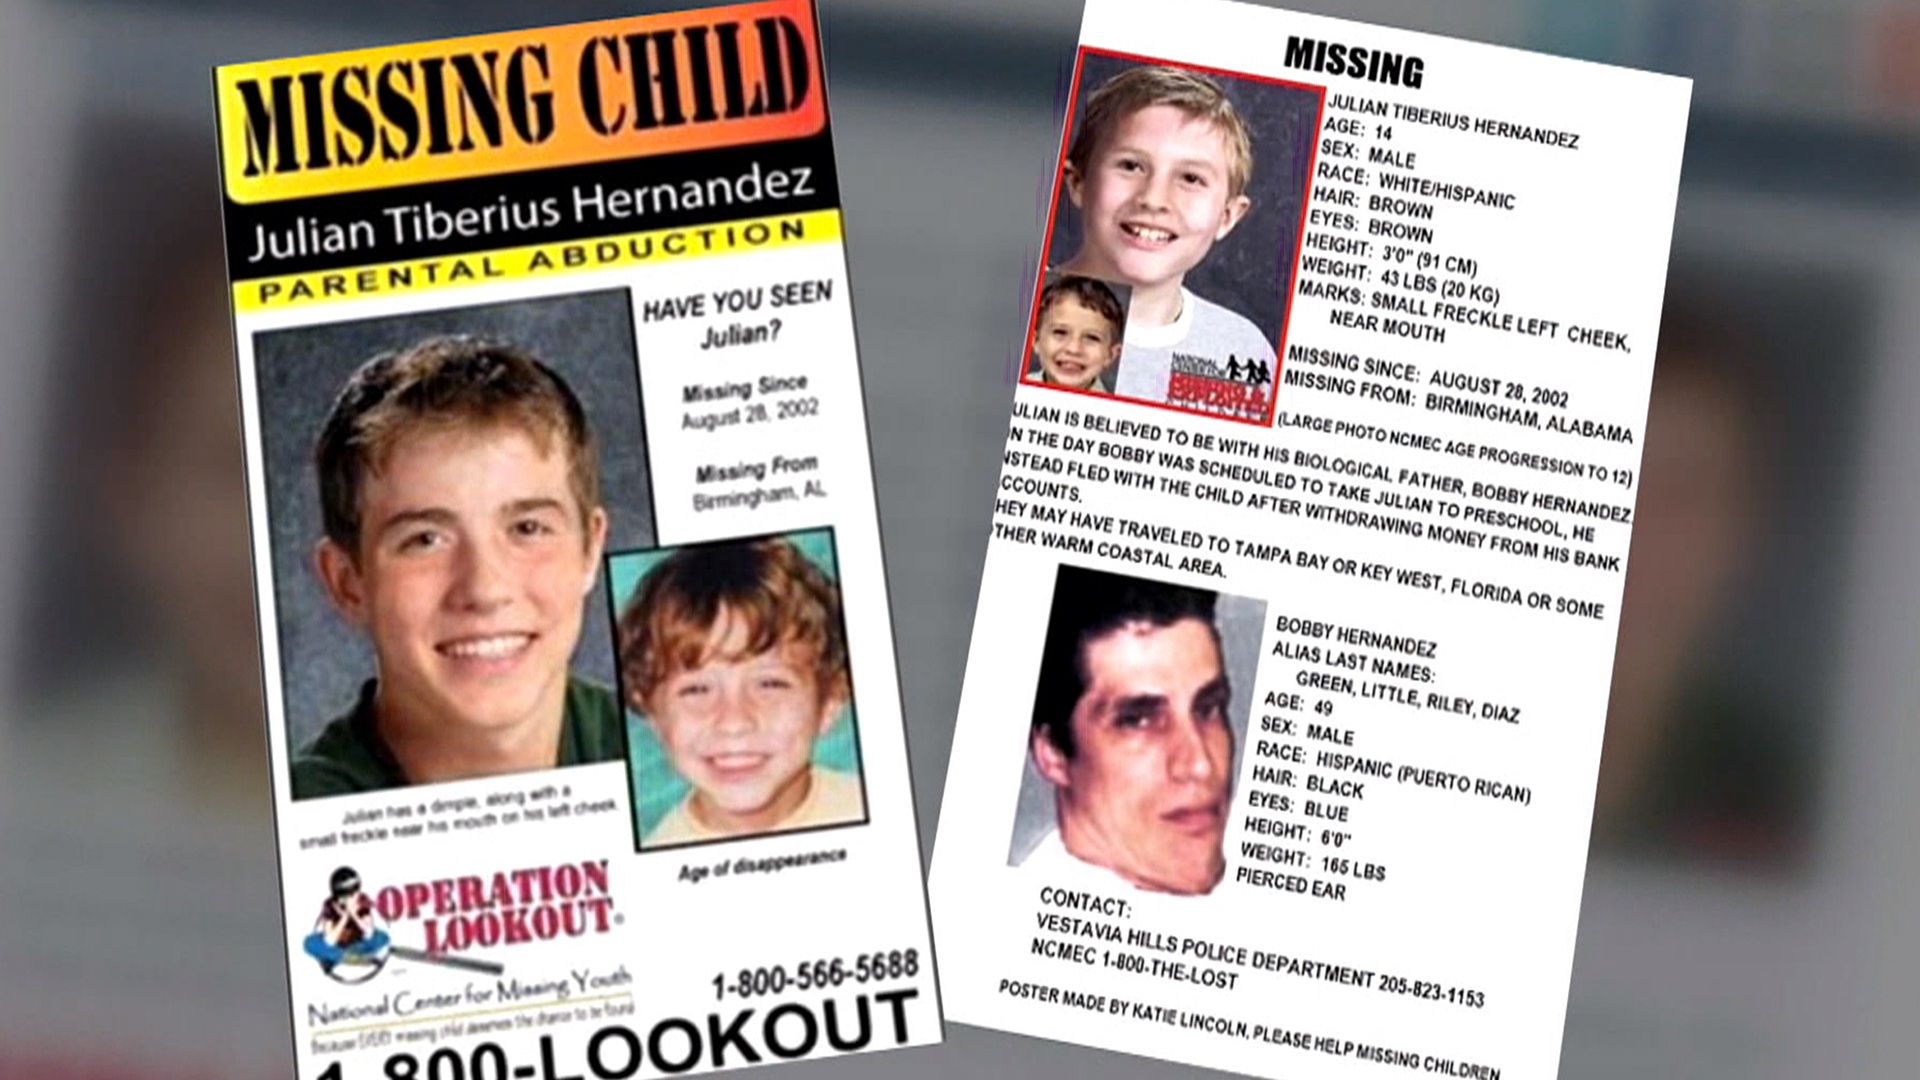 Mother 'Overjoyed' After Boy Missing for 13 Years Found